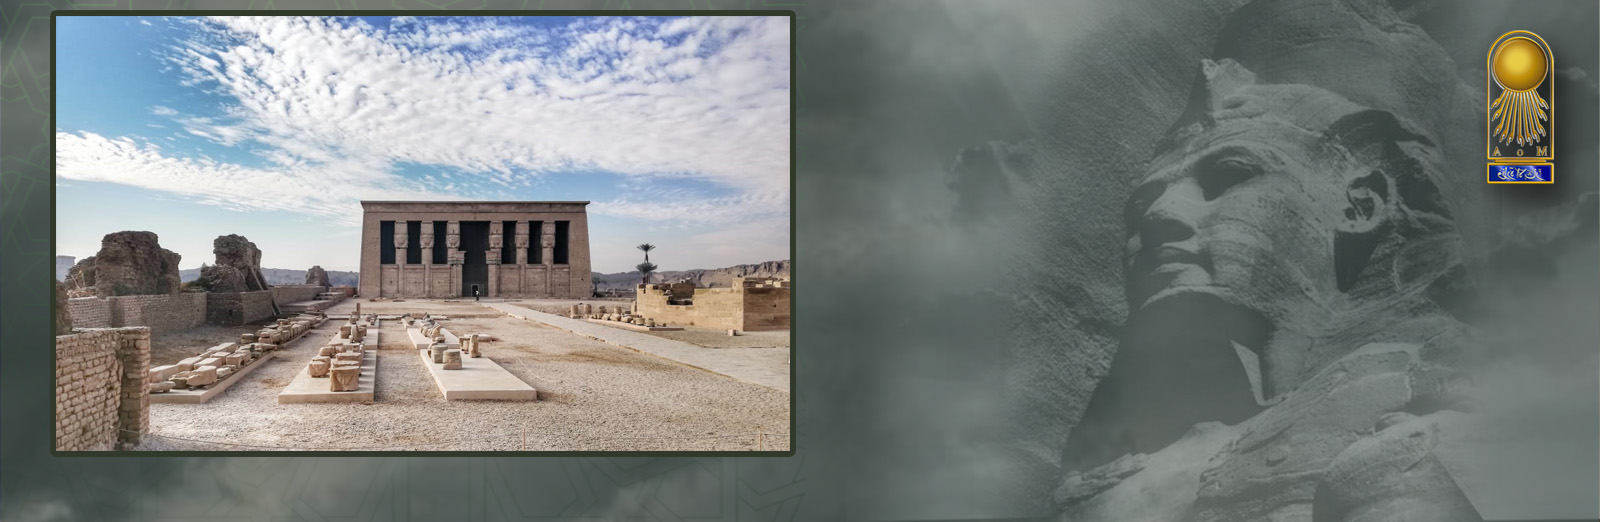 the development project of the archaeological site of Dendera Temple